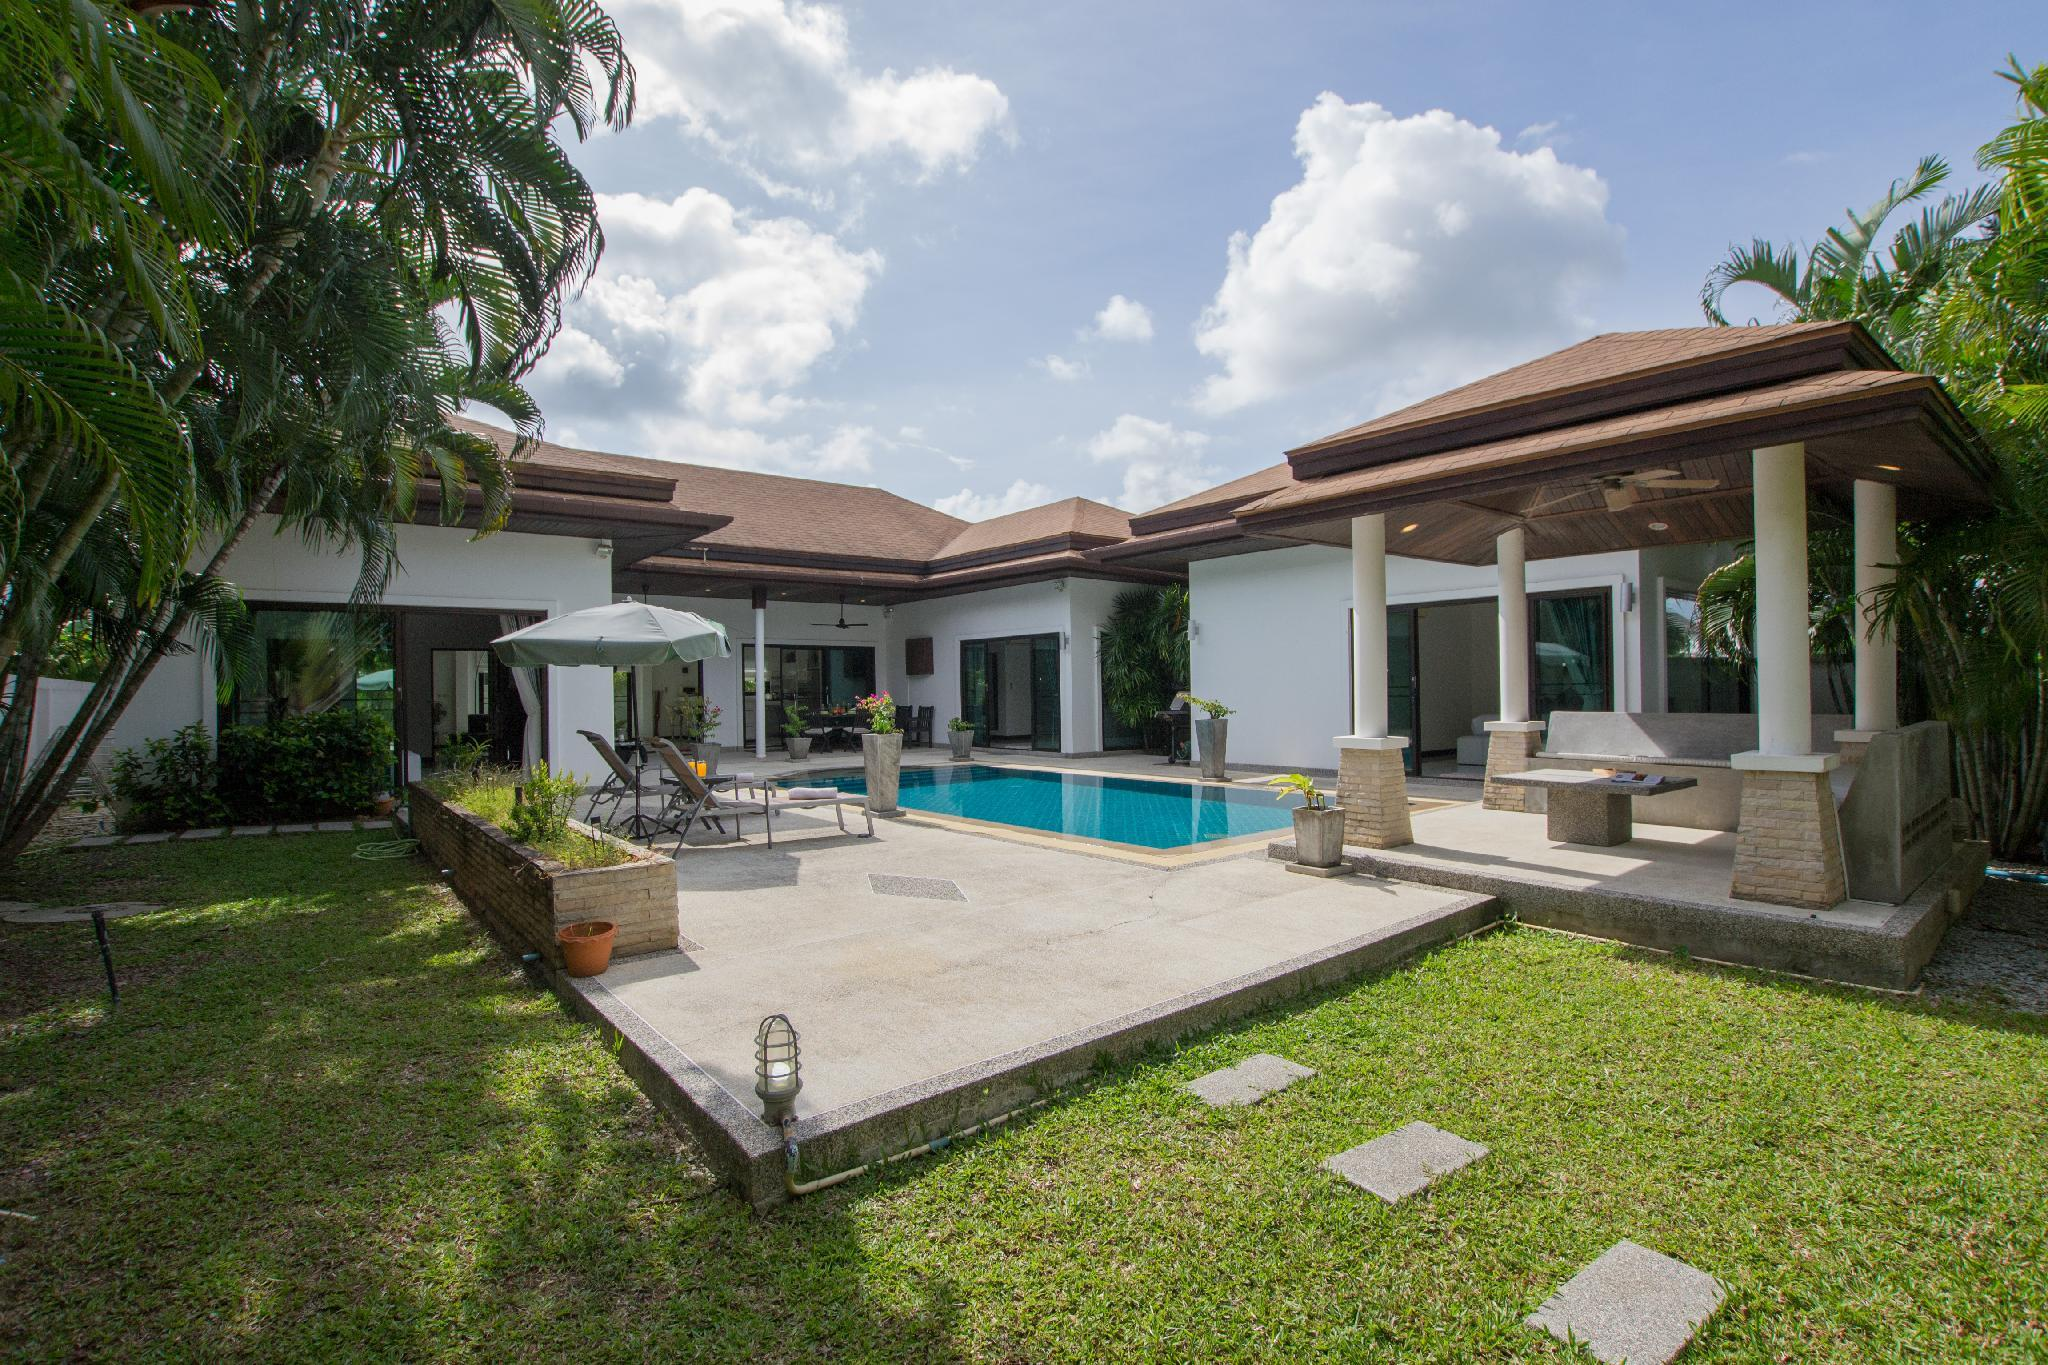 Exquisite Boutique Villa, Pool, 3 bedrooms, Rawai Exquisite Boutique Villa, Pool, 3 bedrooms, Rawai